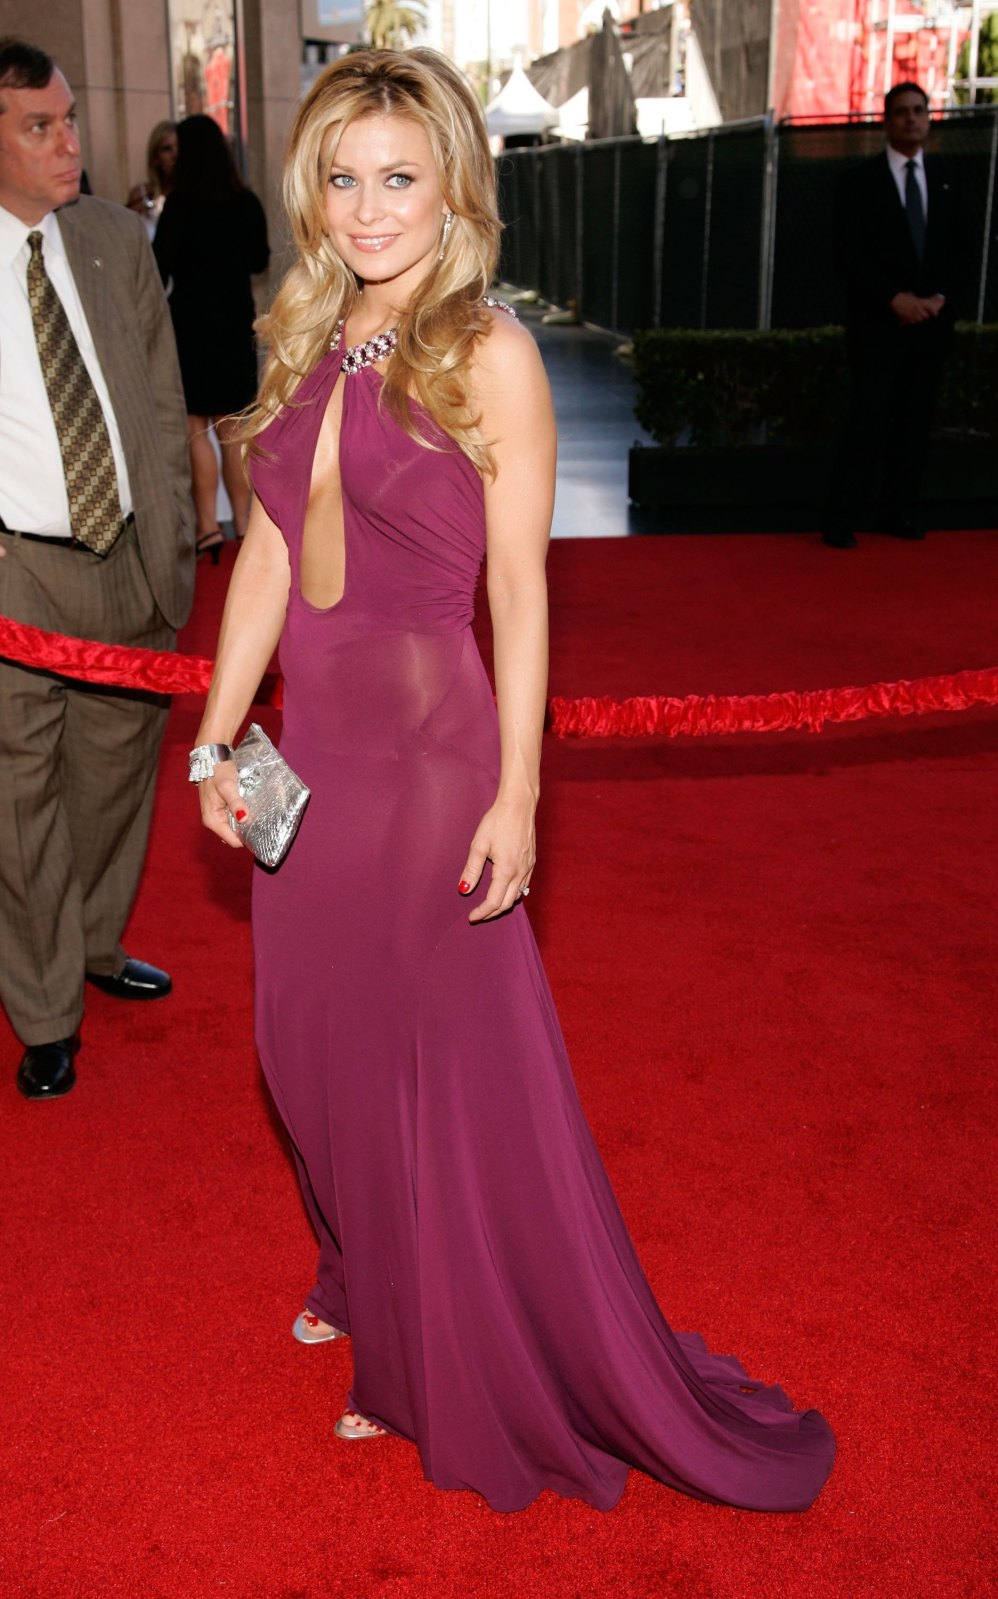 Images Of Cute Dolls Wallpaper Wallpaper World Carmen Electra At Red Carpet